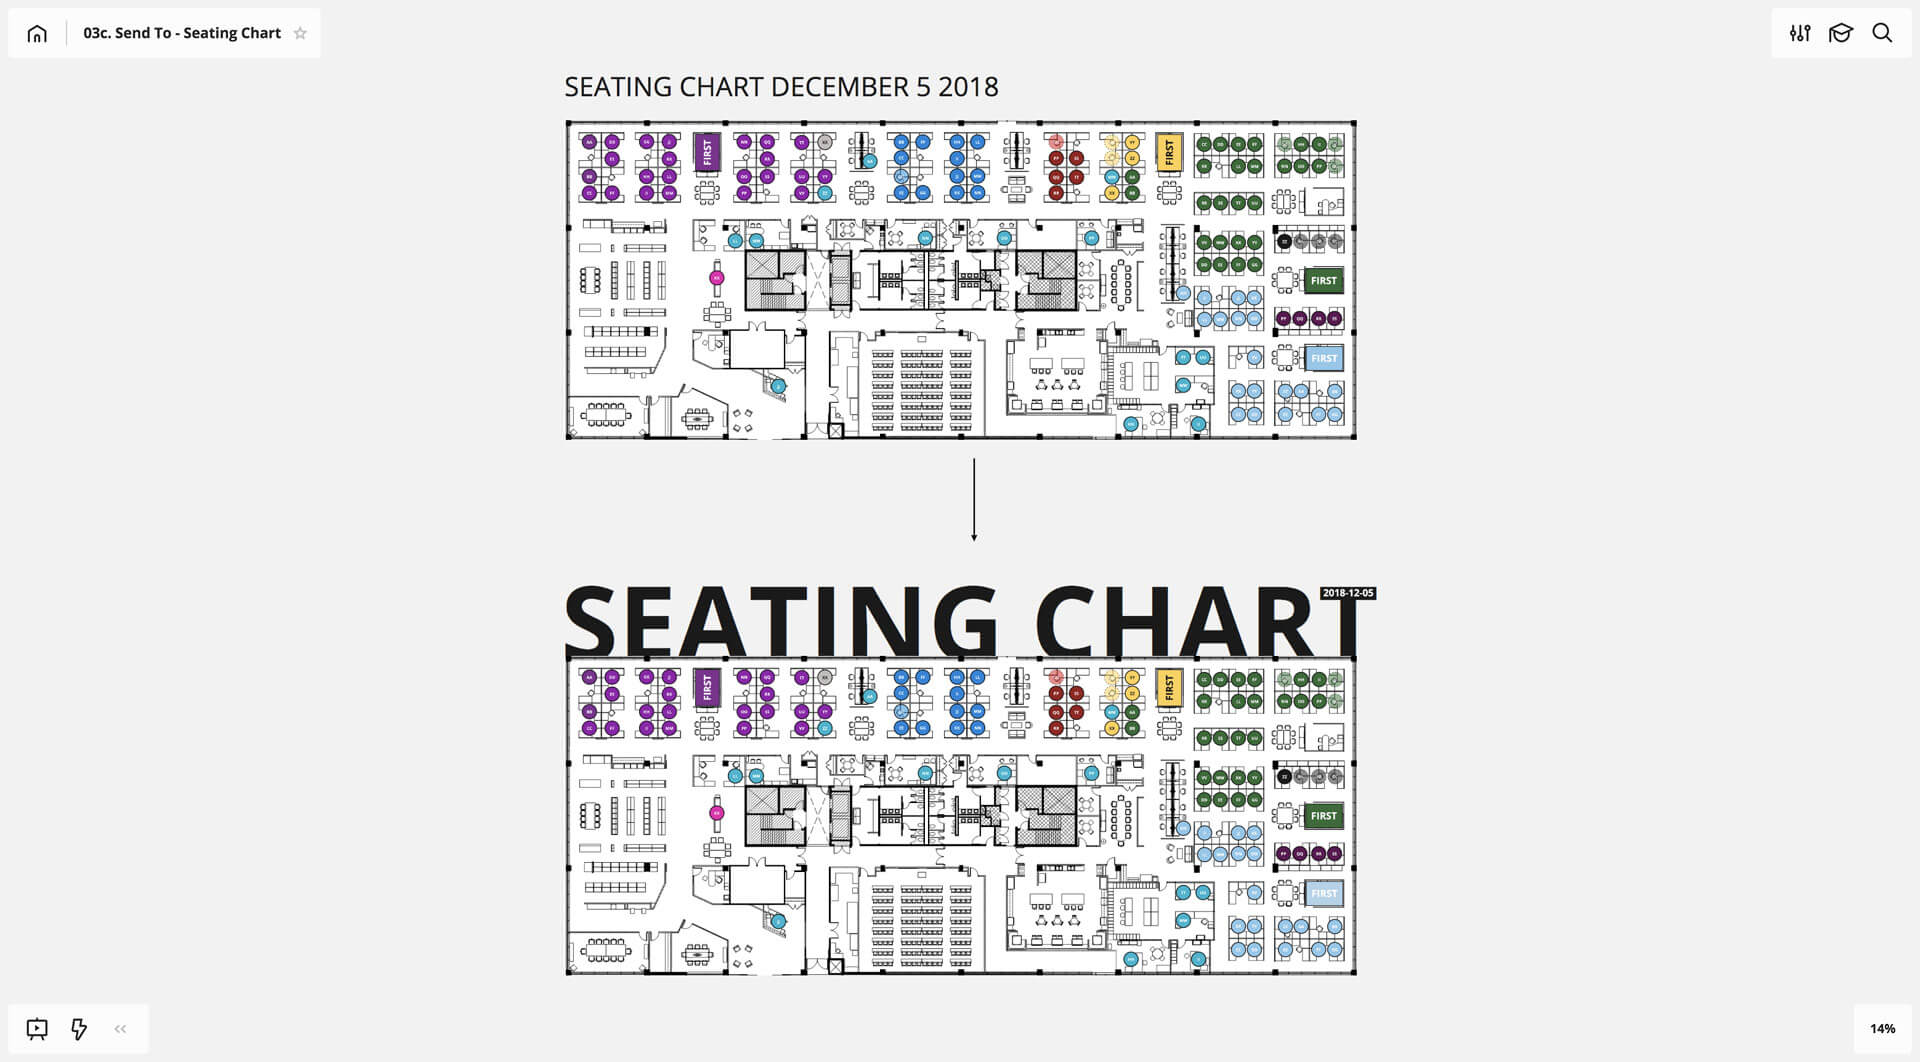 how to create a seating chart for your team in realtimeboard